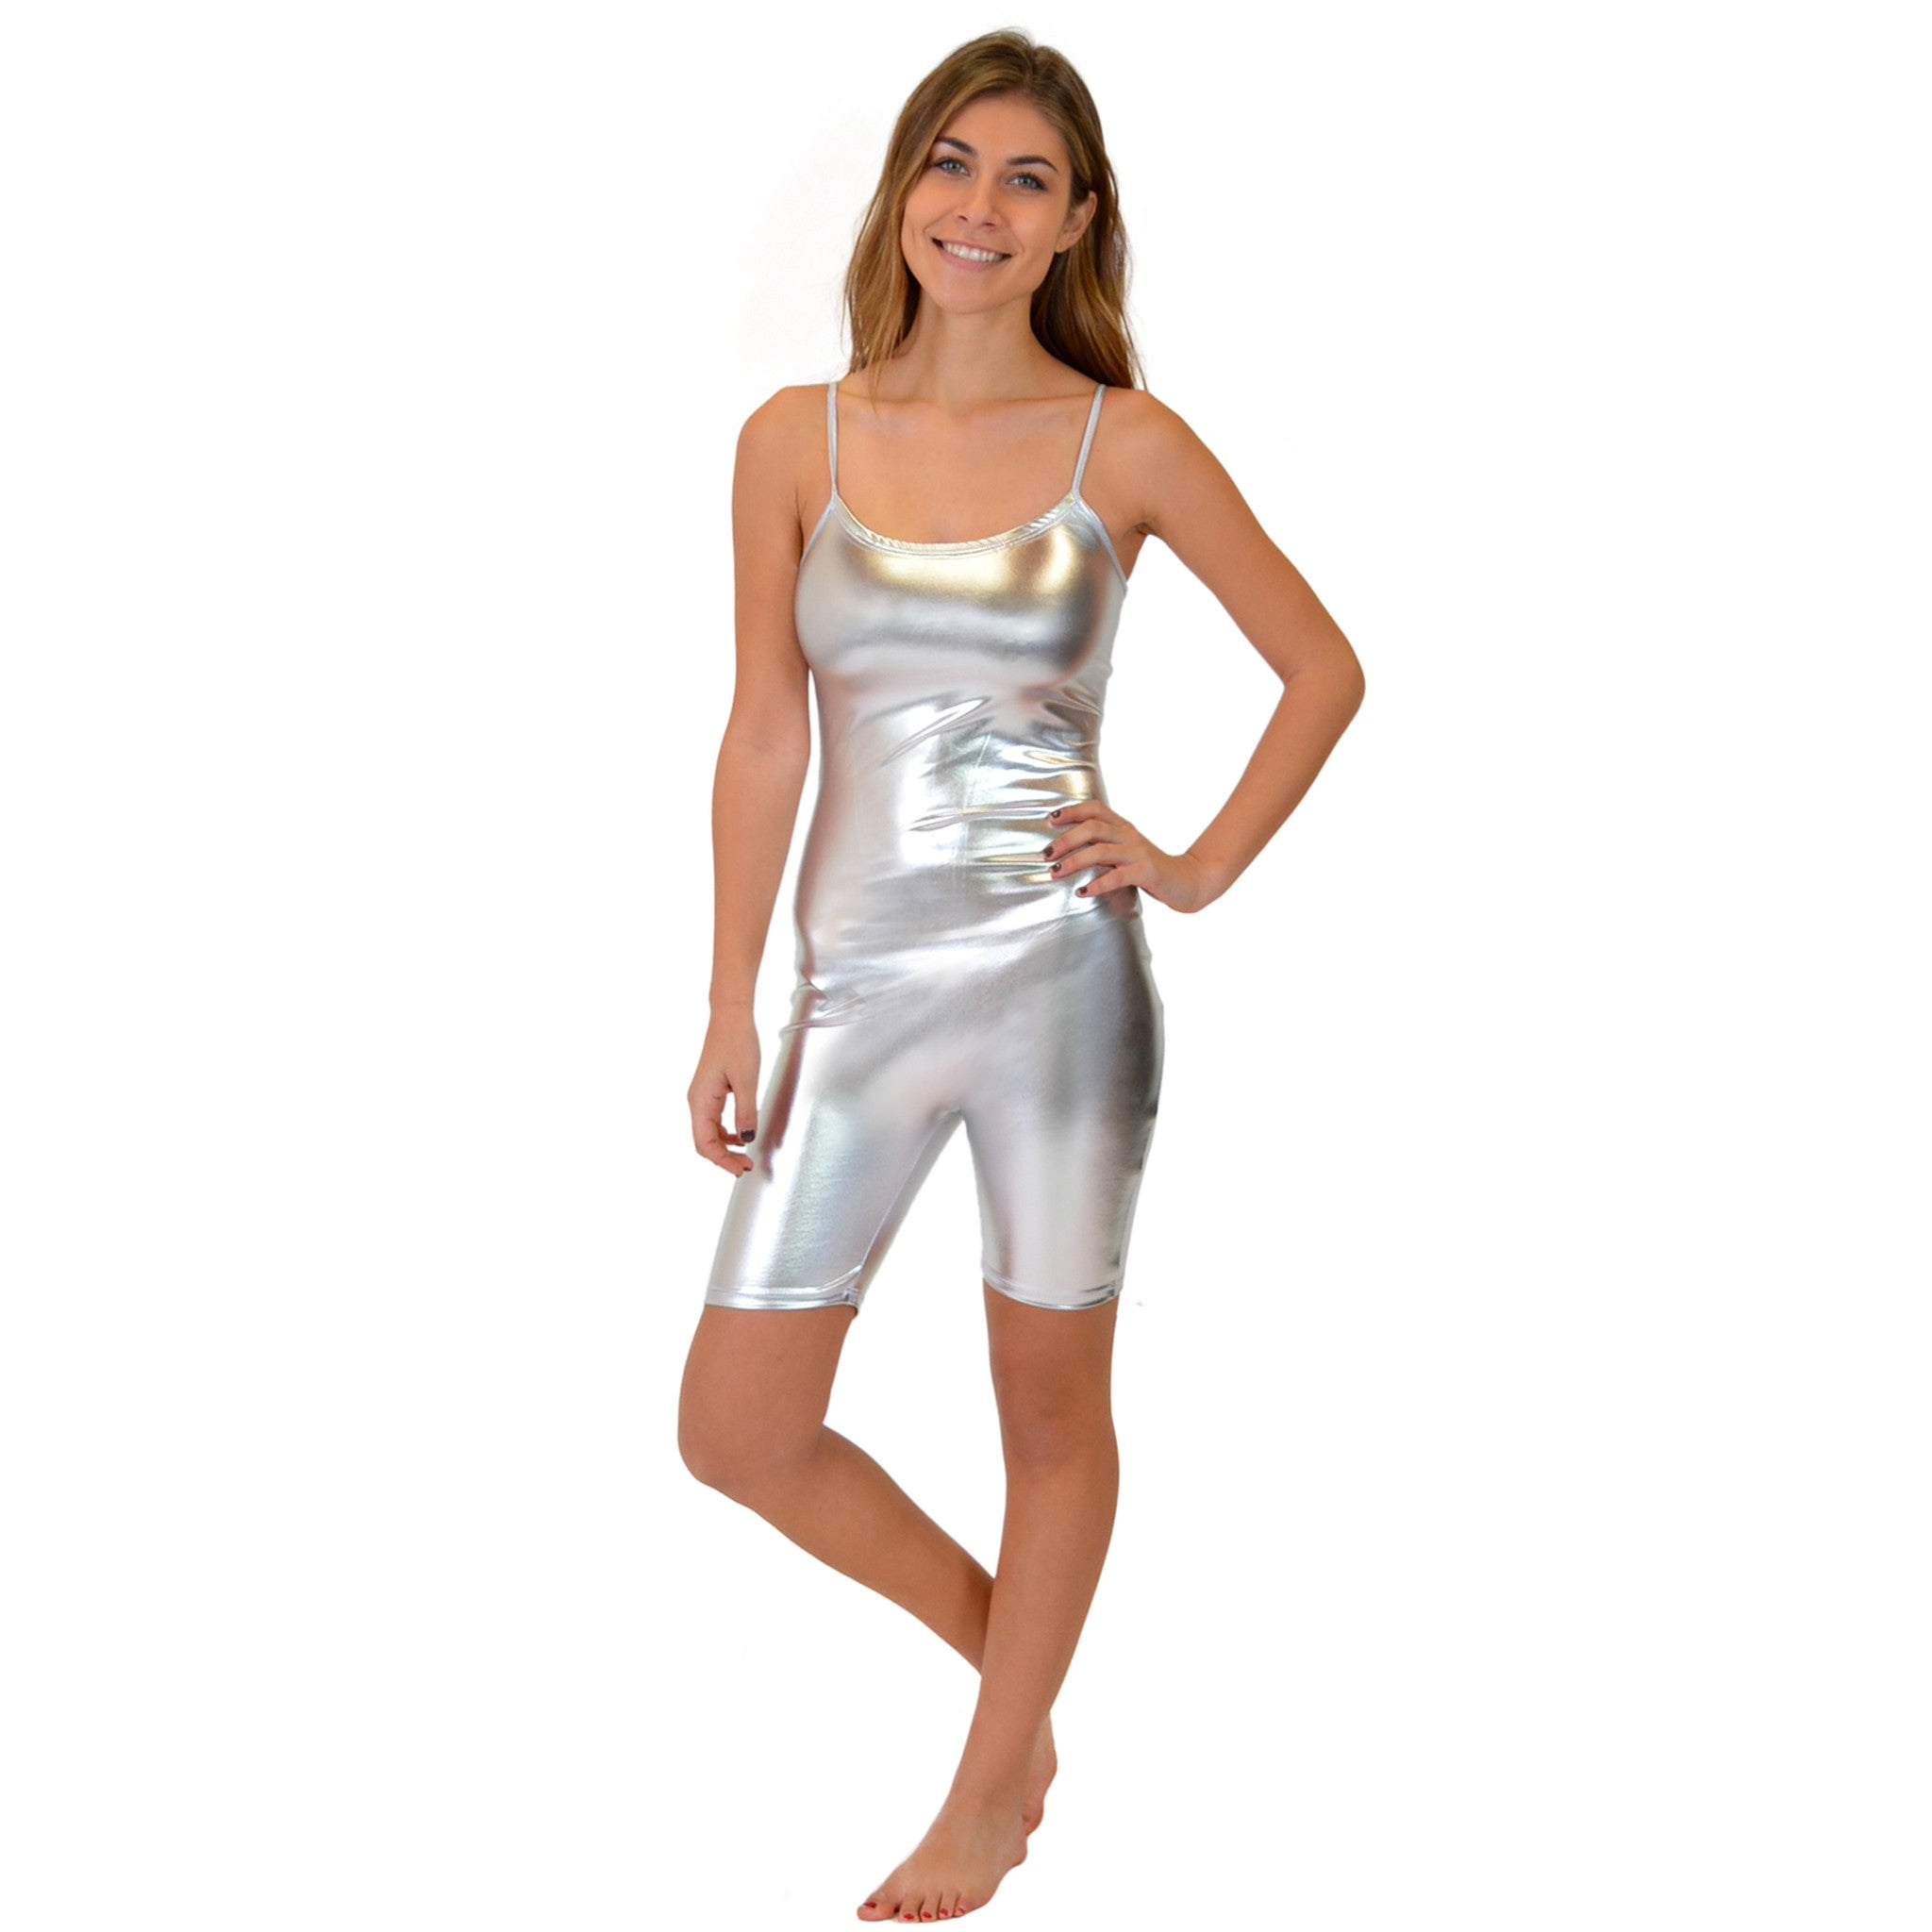 Women's Metallic Camisole Unitard Shorties